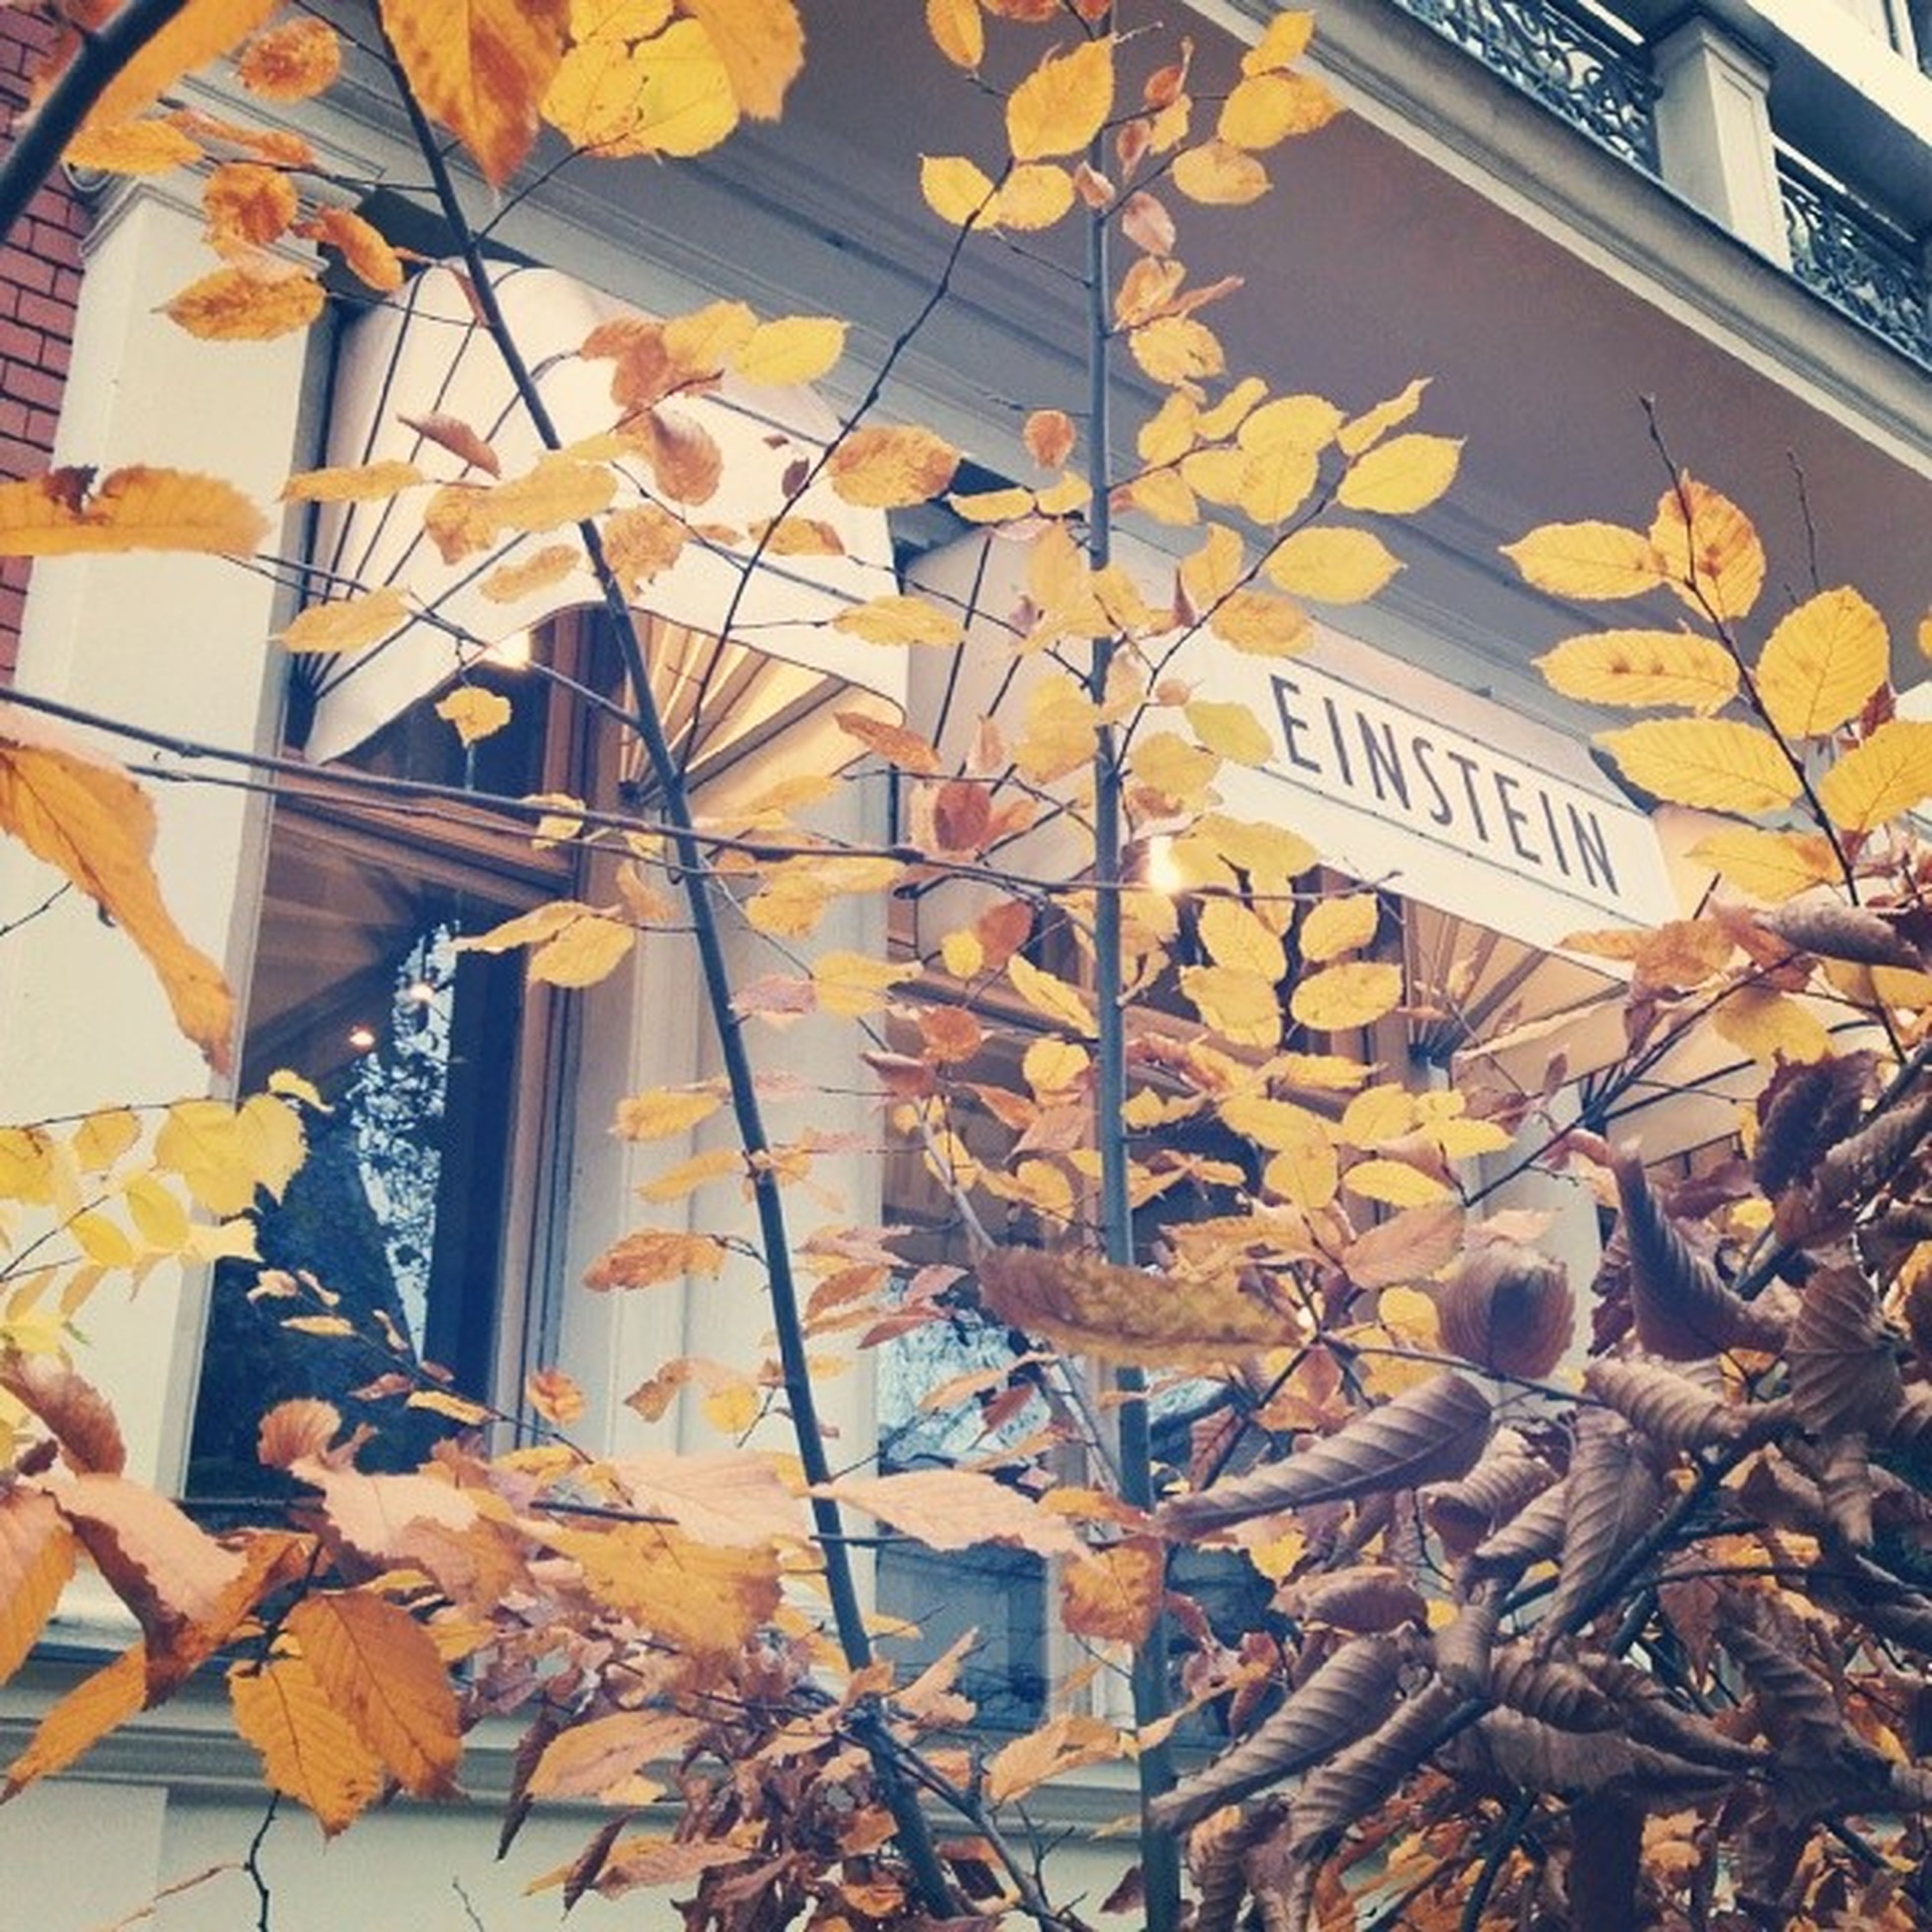 built structure, text, architecture, communication, wall - building feature, graffiti, building exterior, western script, yellow, leaf, low angle view, wall, autumn, day, outdoors, building, creativity, no people, art, window